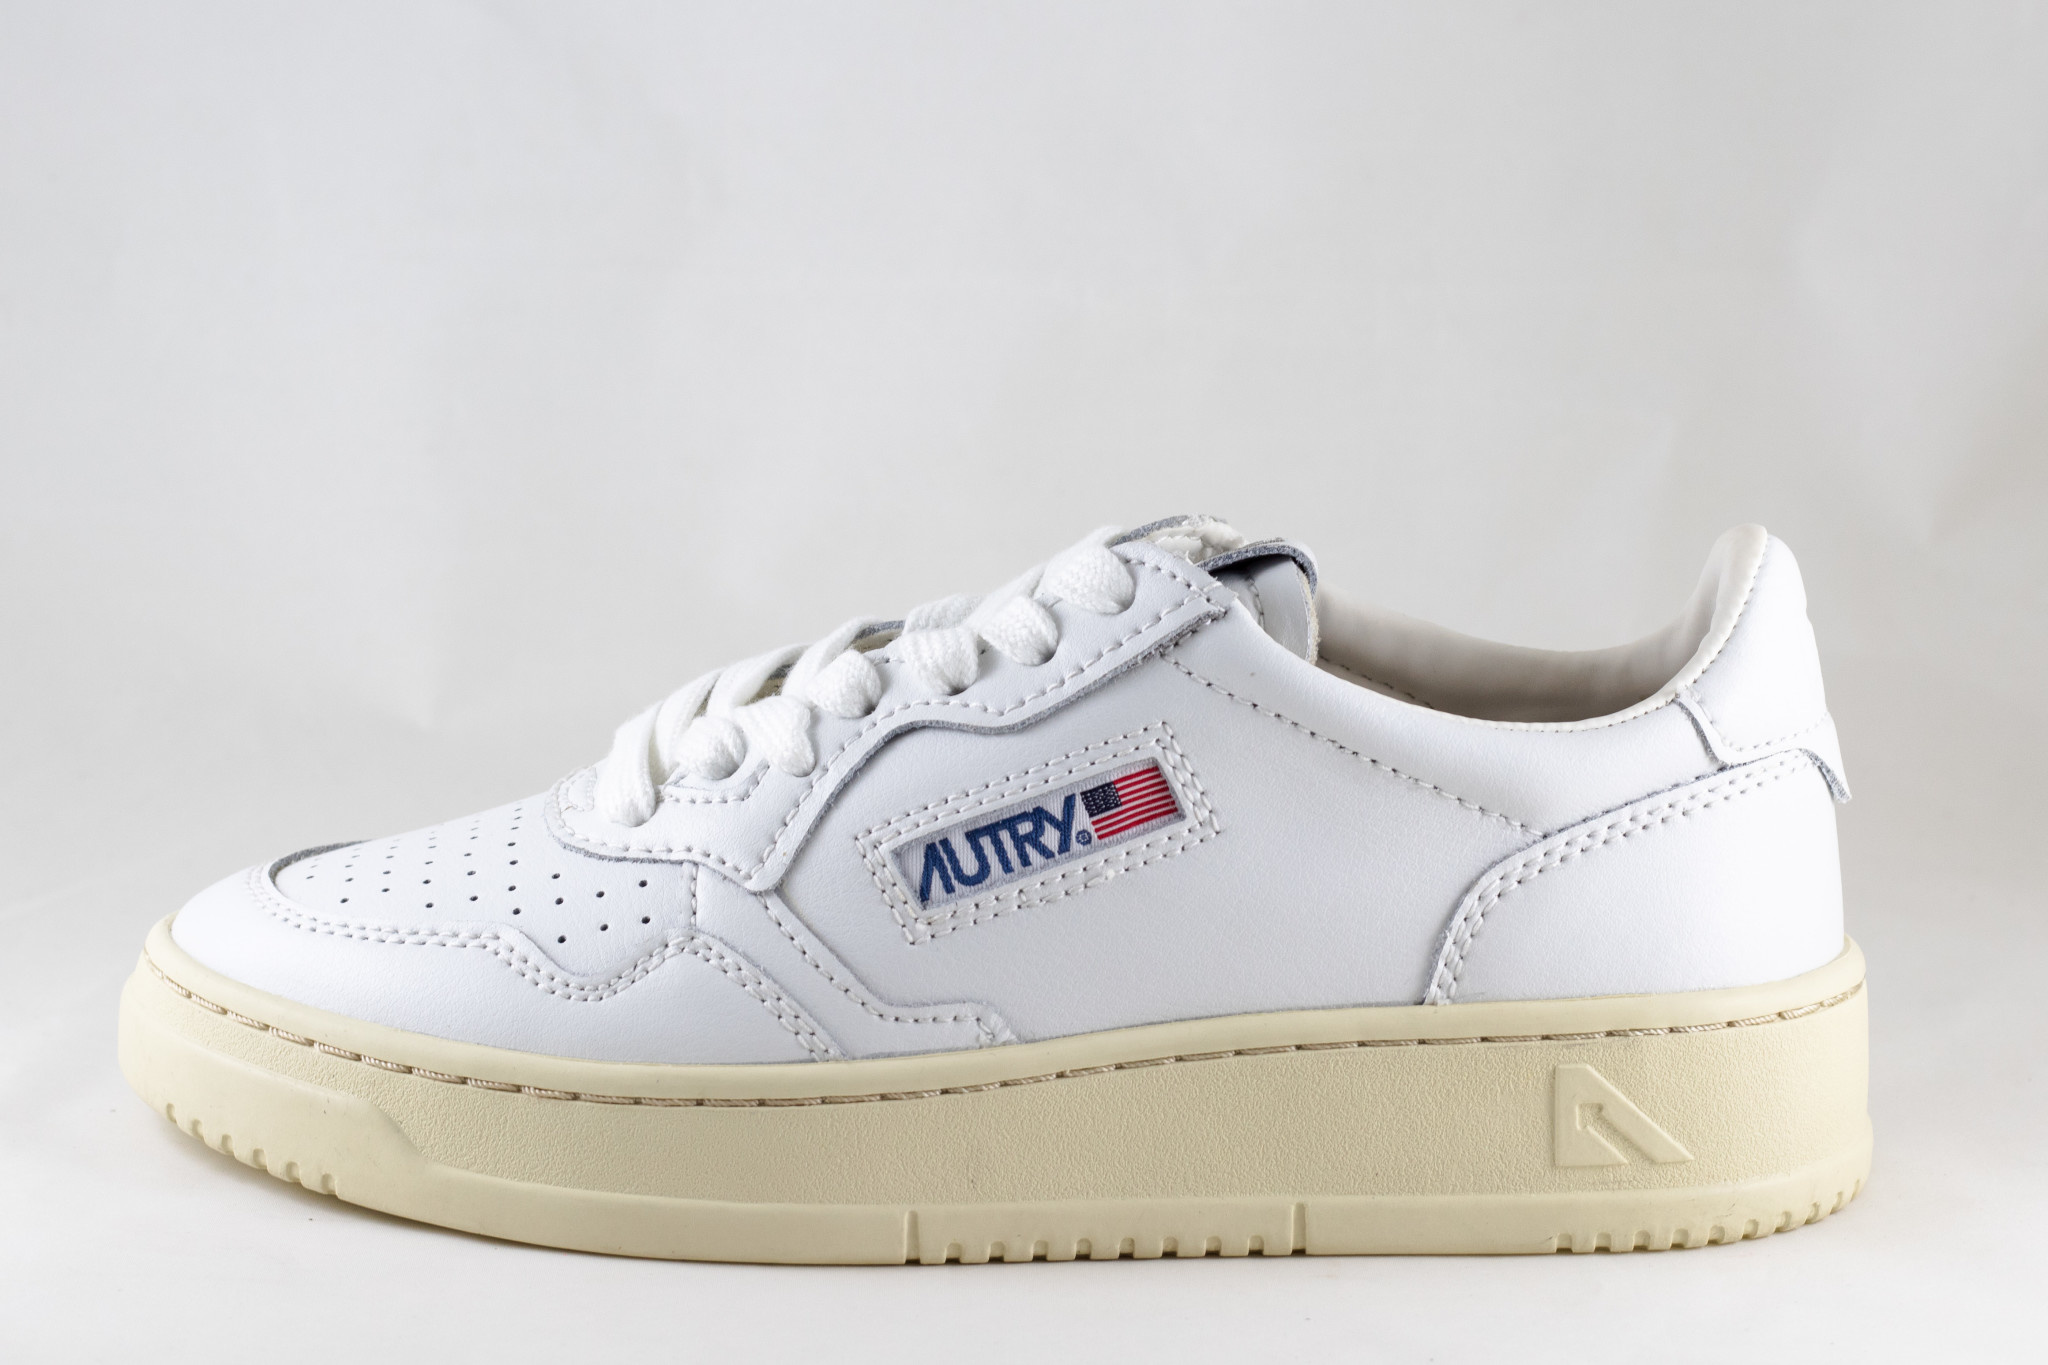 AUTRY LL15 LOW  LEATHER White/ White